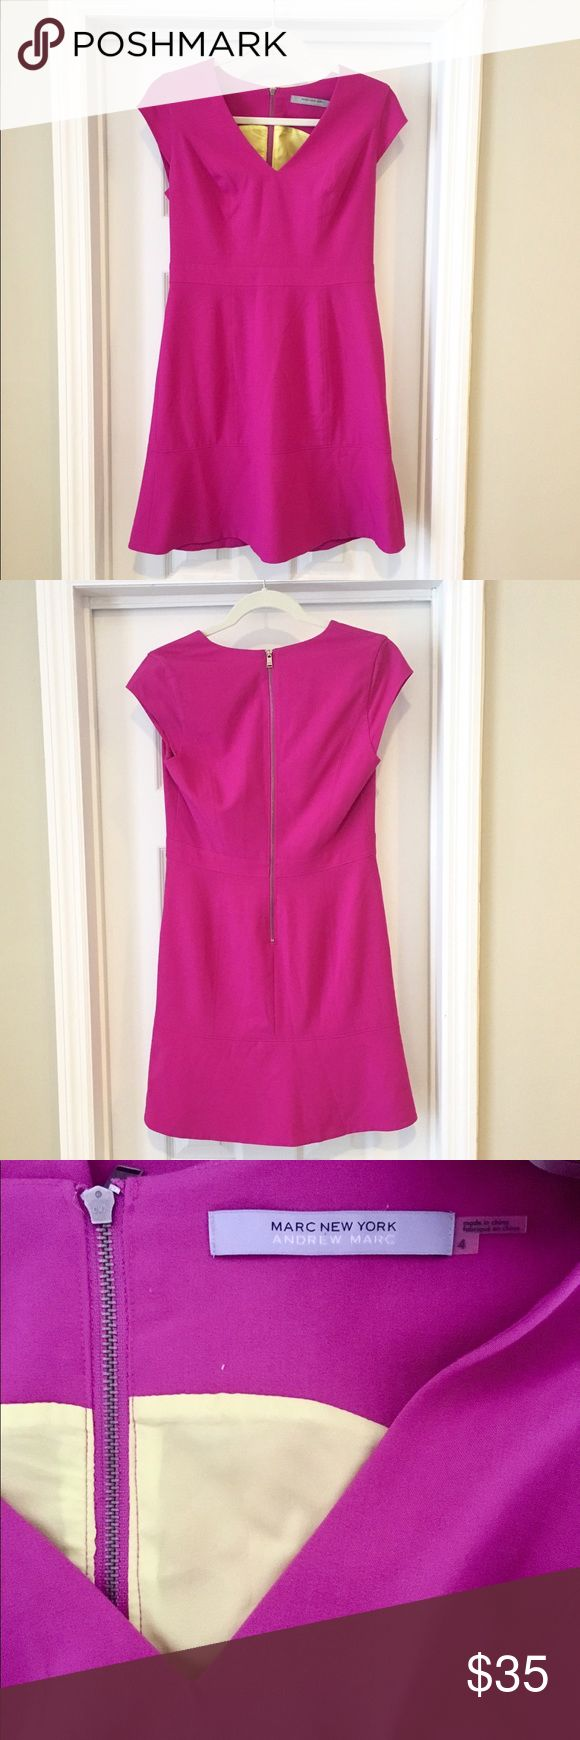 Marc New York by Andrew Marc Pink Size 4 Dress A sassy, flirty and vibrant pink mini dress that can be dressed up for the office, out for drinks, or dressed up for date night. Comfortable and flattering fit. Andrew Marc Dresses Mini